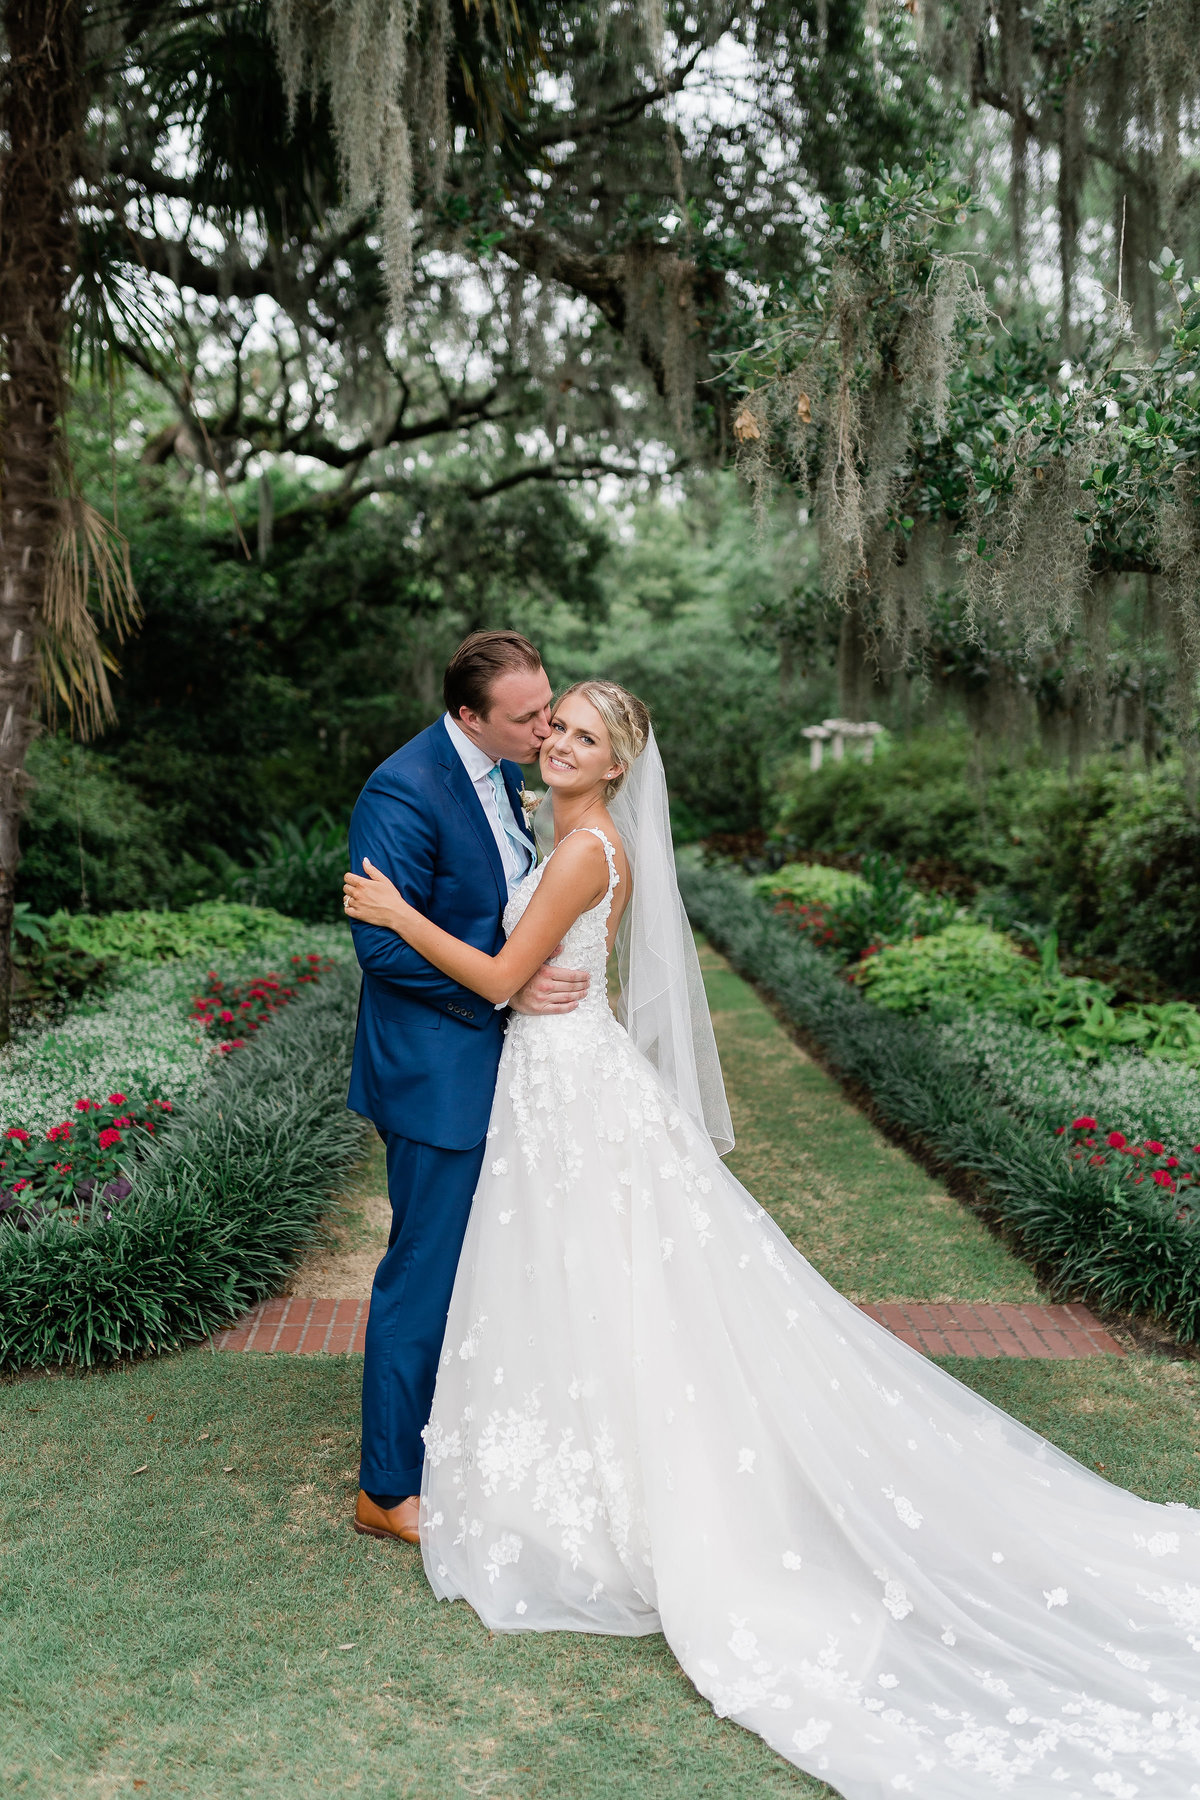 Destination wedding photographers, wilmington nc wedding photographers, north carolina wedding photo and video